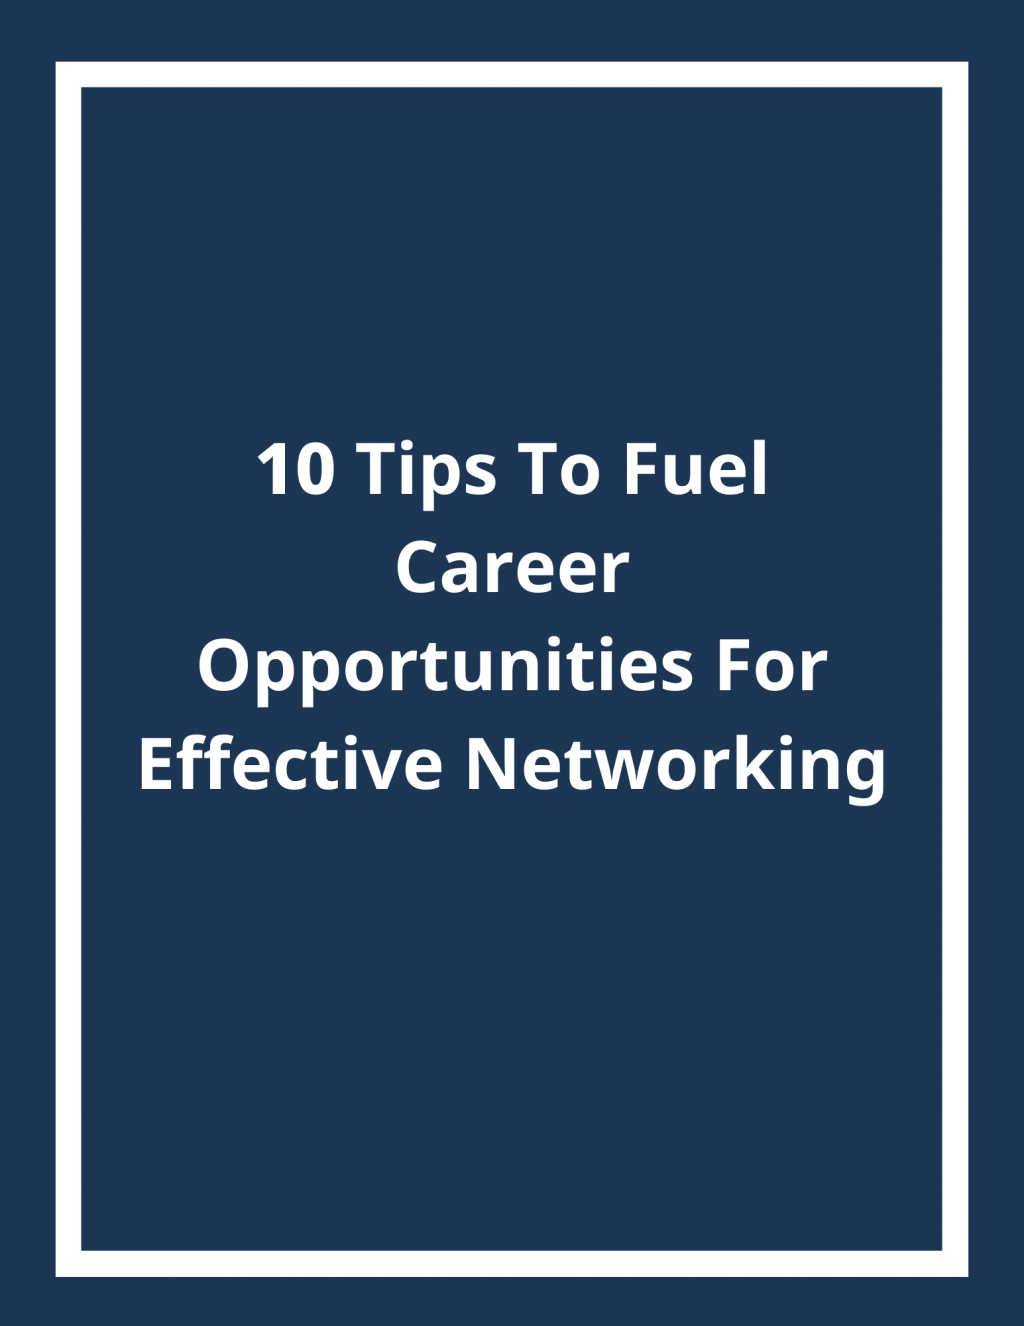 10 Tips To Fuel Career Opportunities For Effective Networking